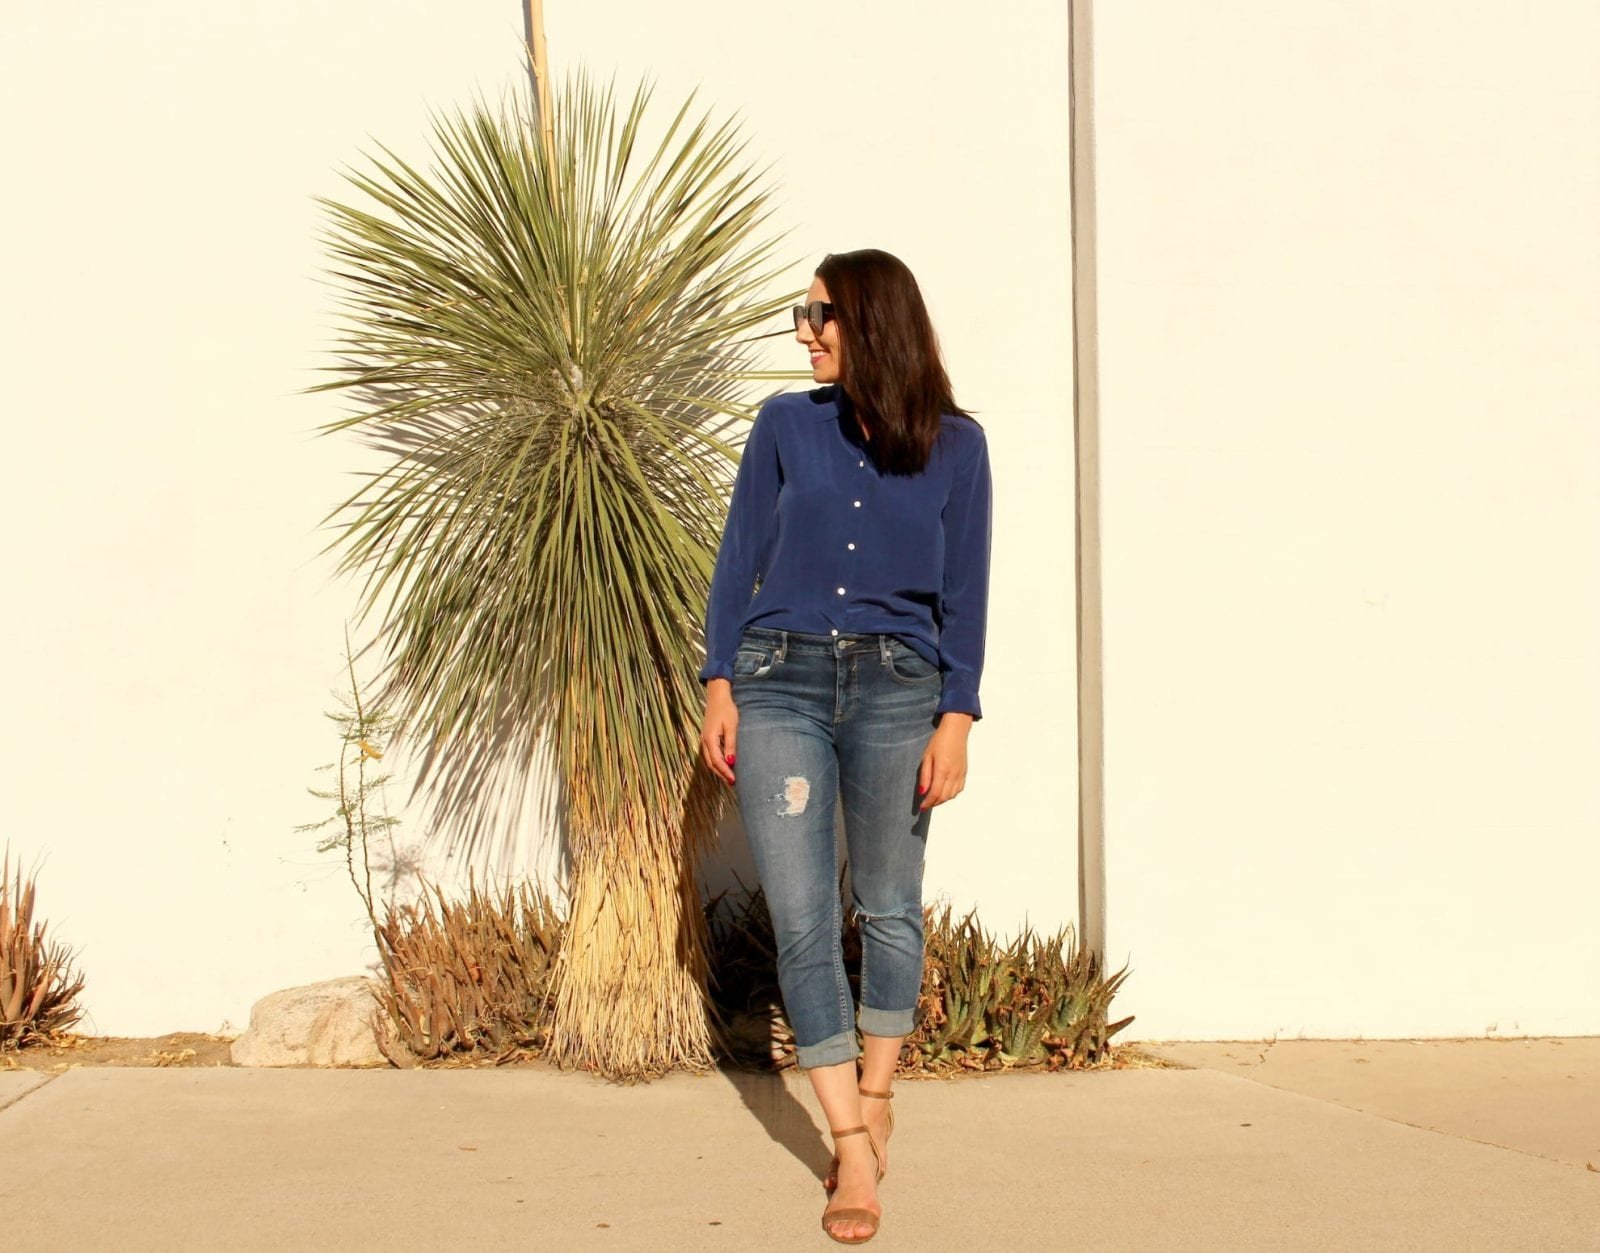 Standing looking to the right in my Everlane blouse and slightly distressed jeans.